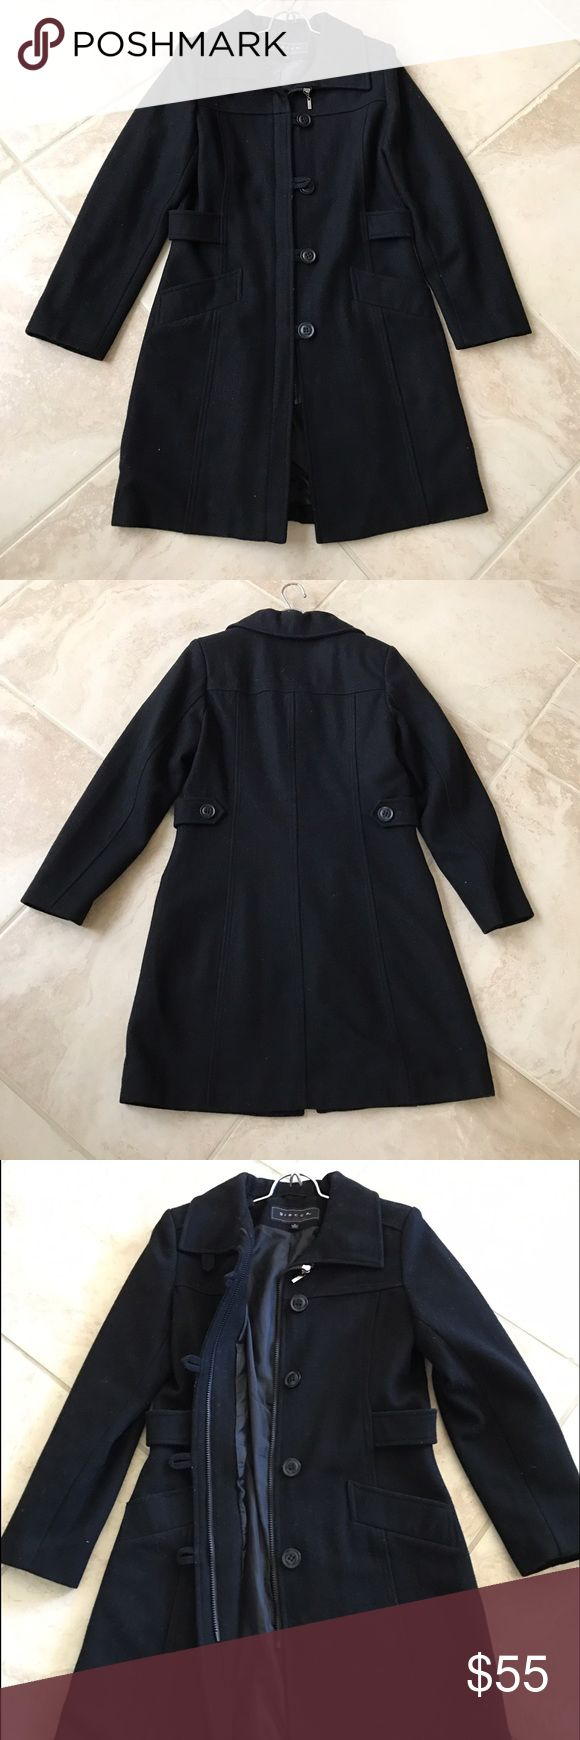 Giacca Gallery wool coat Giacca Gallery coat shell 80% wool 20% polyester, zip and buttons closure, excellent used condition, Giacca Gallery Jackets & Coats